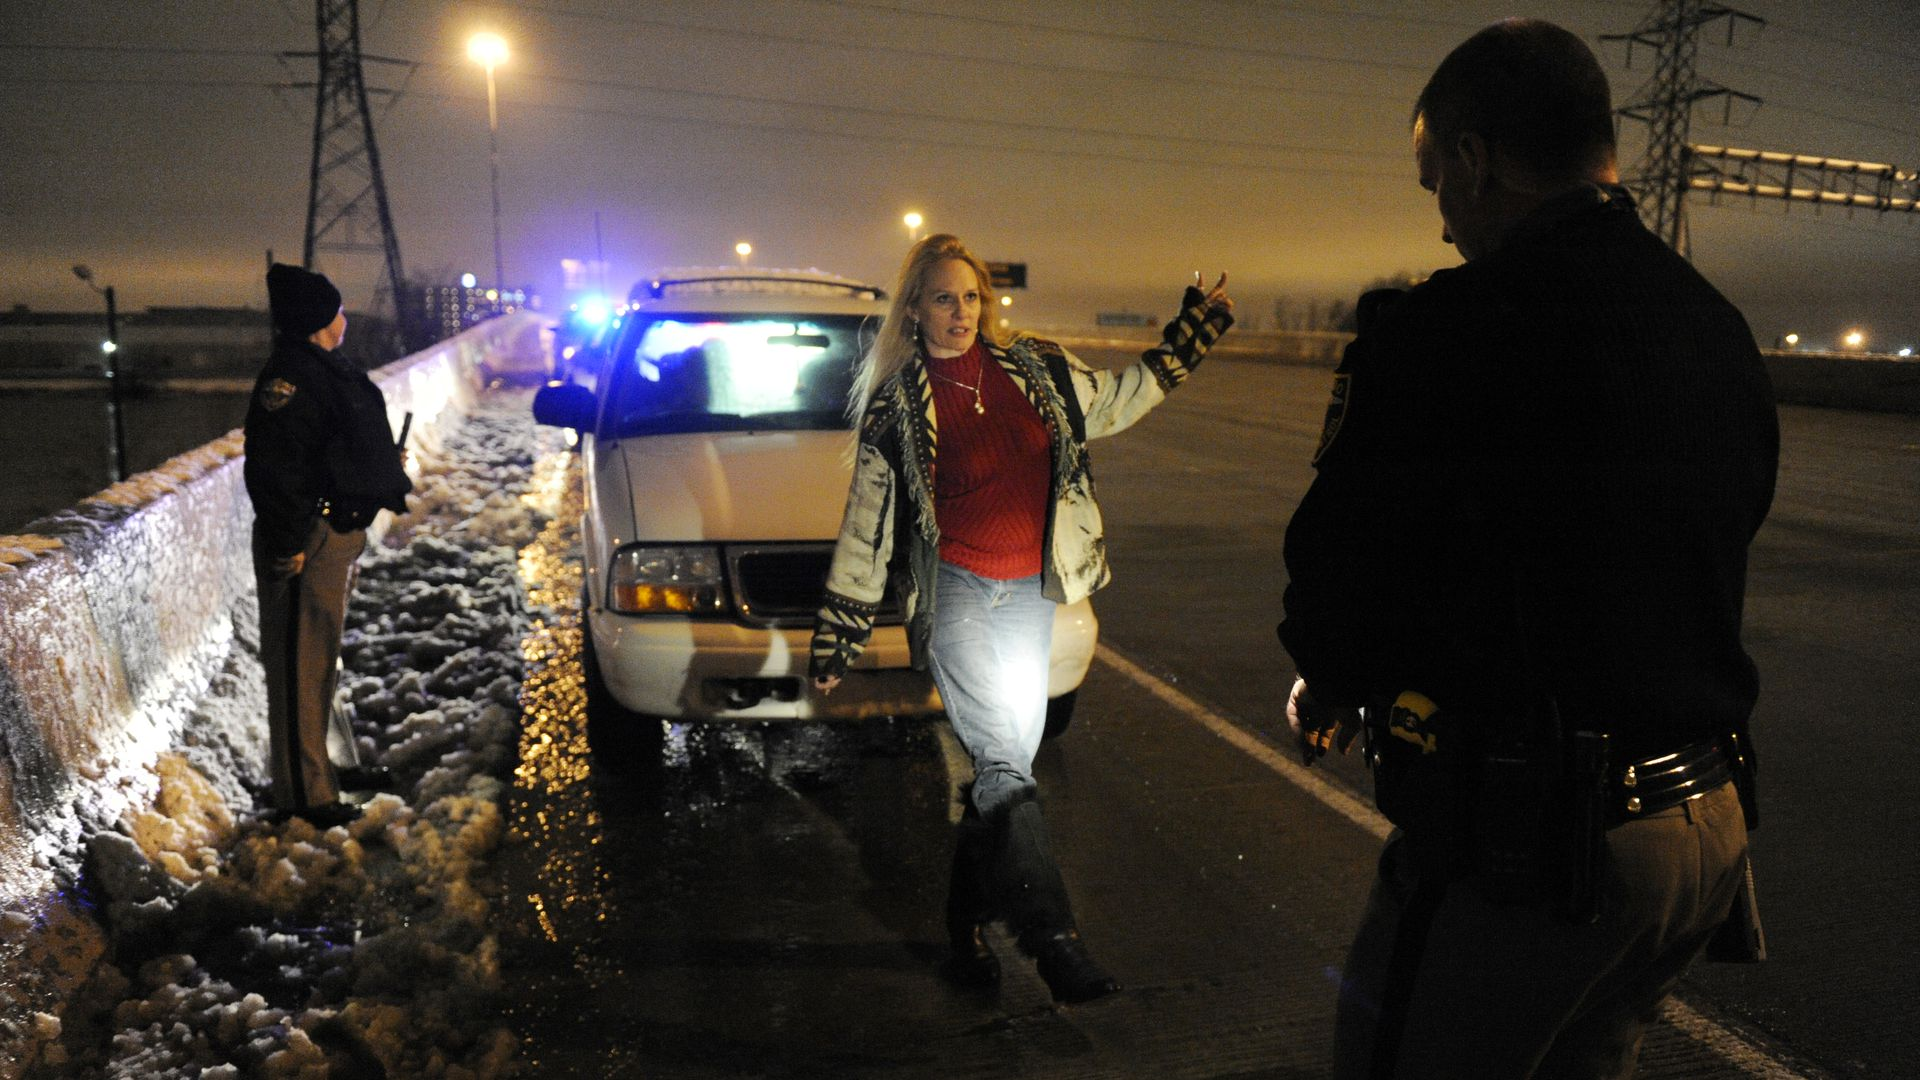 Woman performs sobriety test in front of a copy in the dark on the side of a highway